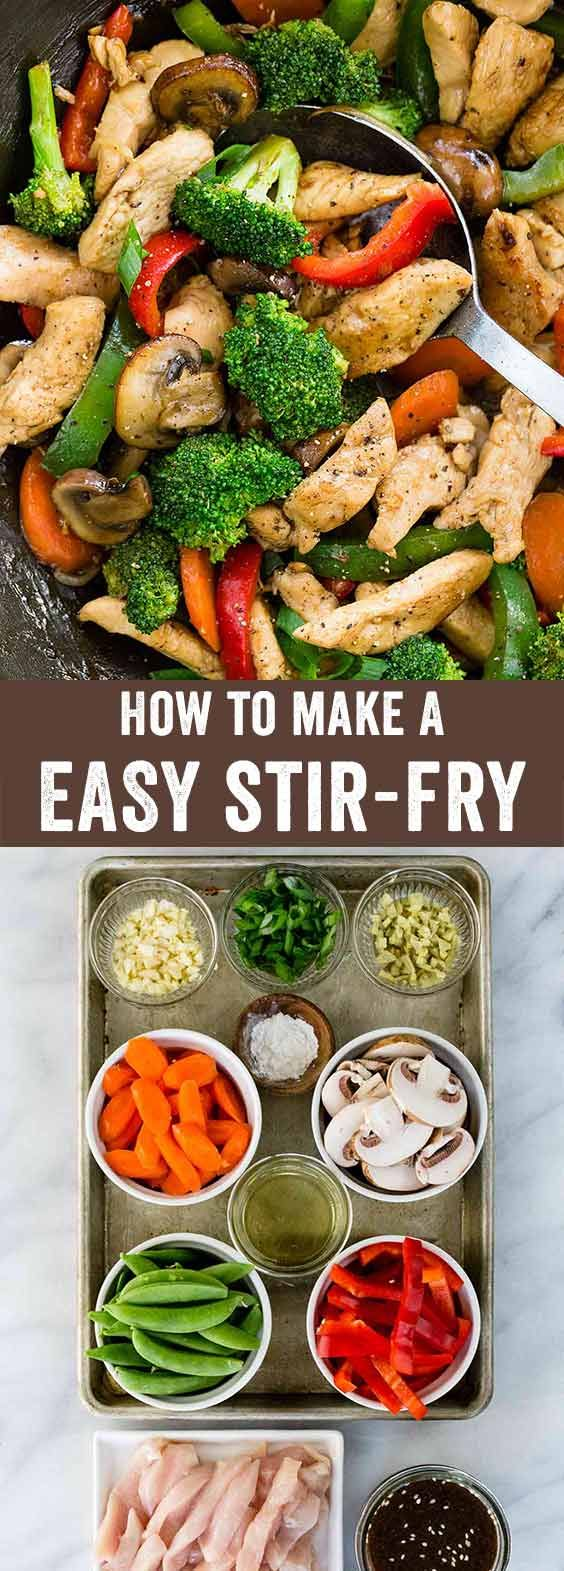 A step-by-step guide to teach you the simple process of making a stir-fry. Learn the basic formula to create a wide variety of Chinese recipes that involve cooking with a wok. via @foodiegavin